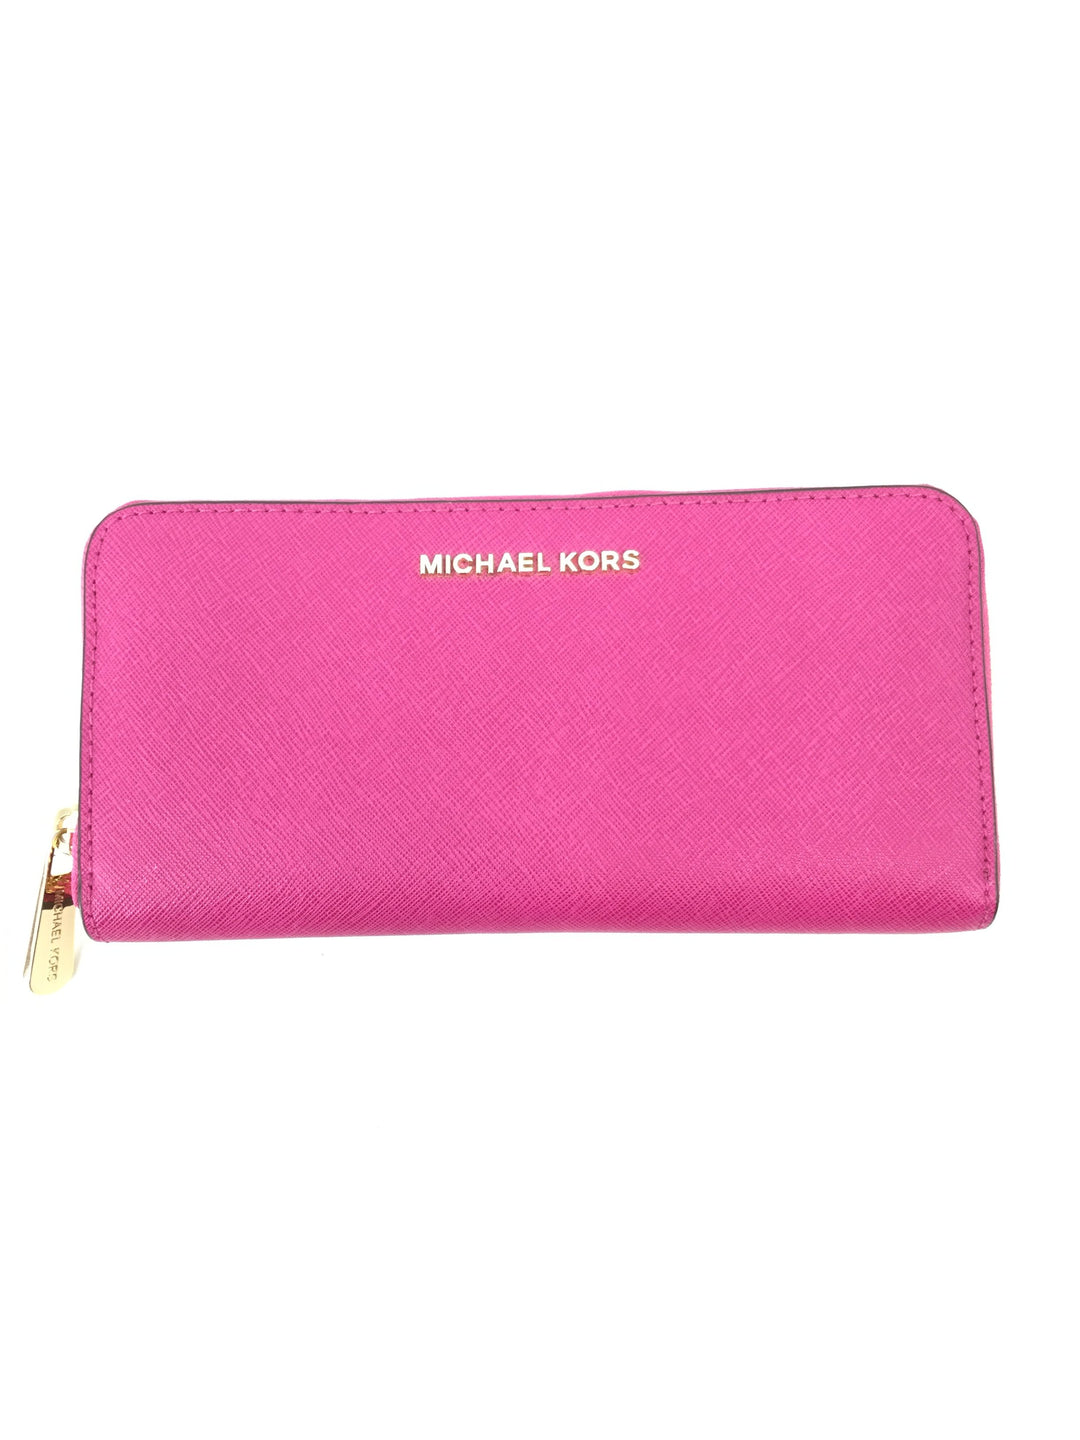 Michael Kors Pink Leather Wallet Size:medium - <P>LIKE NEW MICHAEL KORS BRIGHT PINK LEATHER WALLET. GOLD DETAILING WITH ZIP CLOSURE. PINK INTERIOR WITH ZIP POCKET AND EIGHT CARD SLOTS AND TWO LARGER POCKETS.</P>